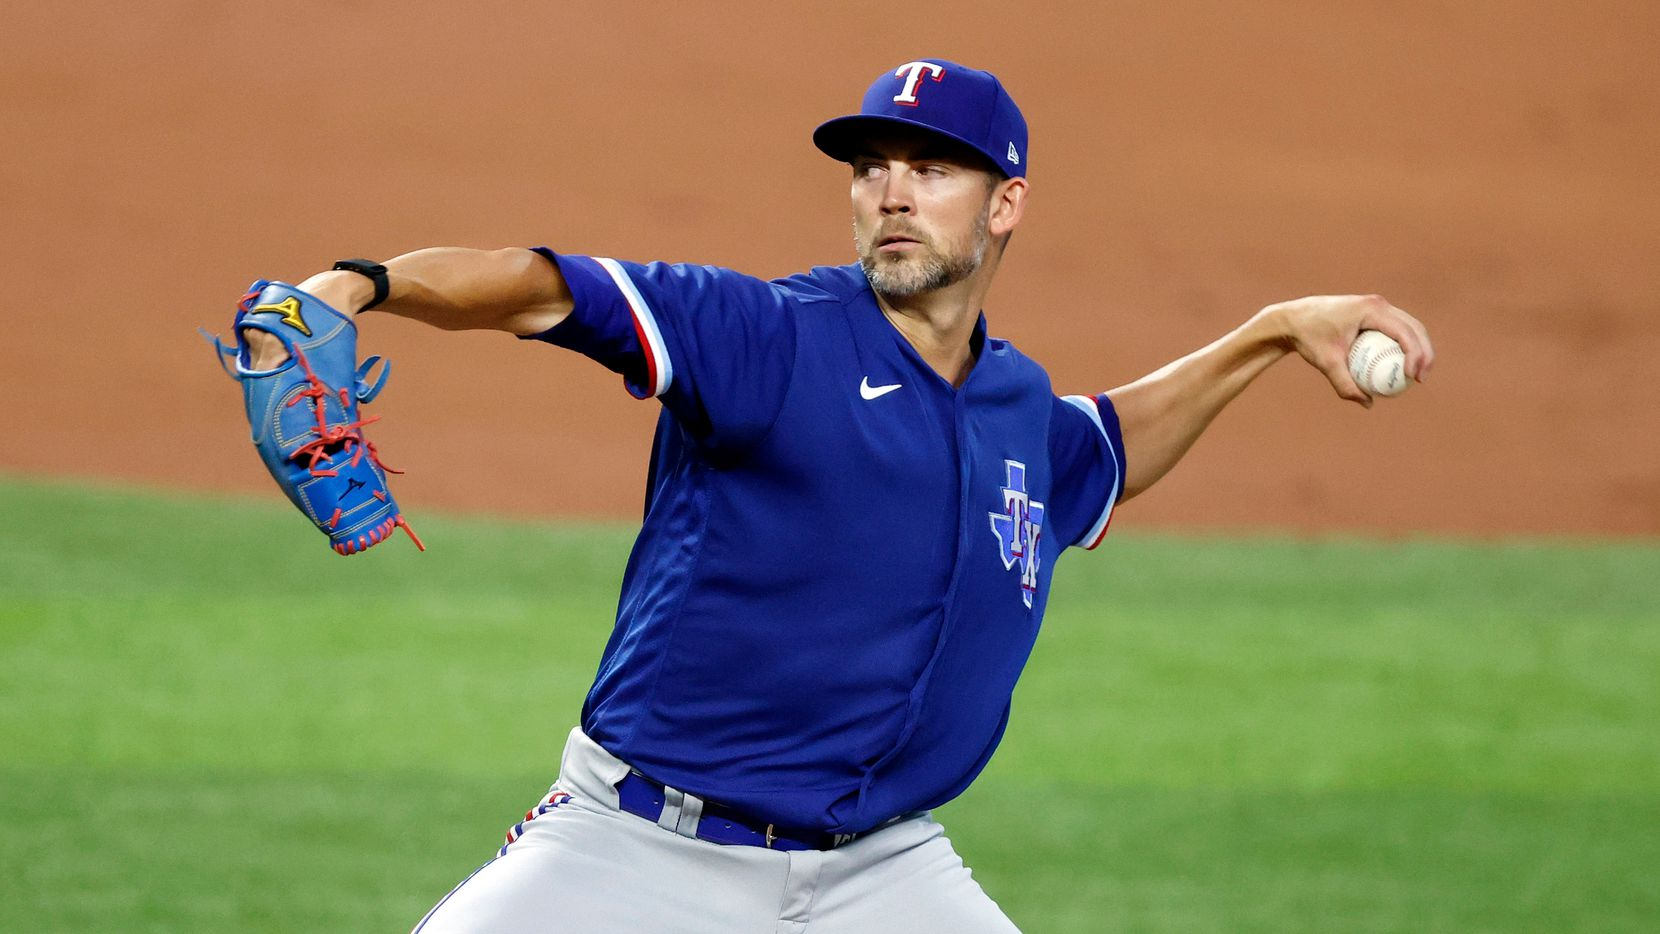 Texas Rangers starting pitcher Mike Minor throws from the mound during a simulated Summer Camp game inside Globe Life Field in Arlington, Texas, Thursday, July 9, 2020.